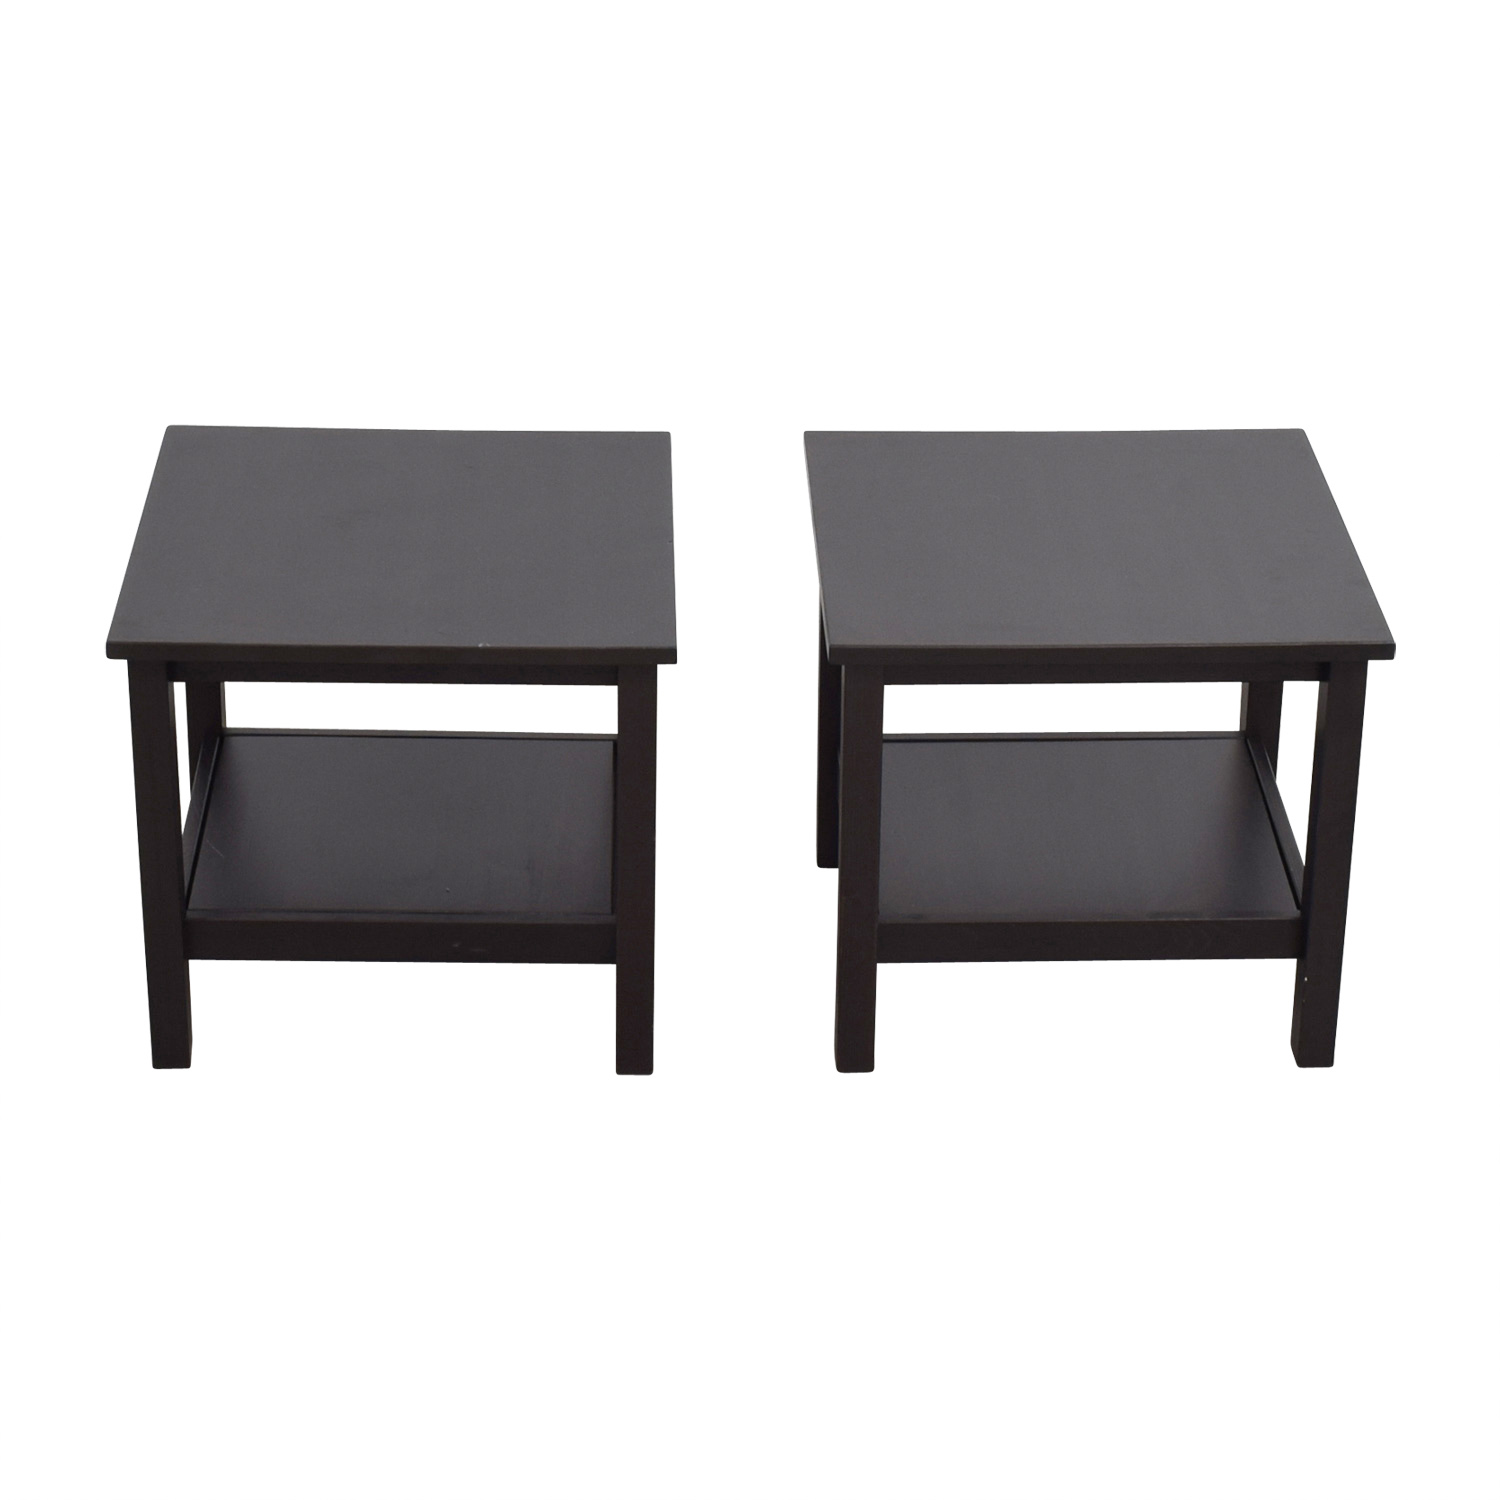 IKEA Hemnes Side Table / Accent Tables